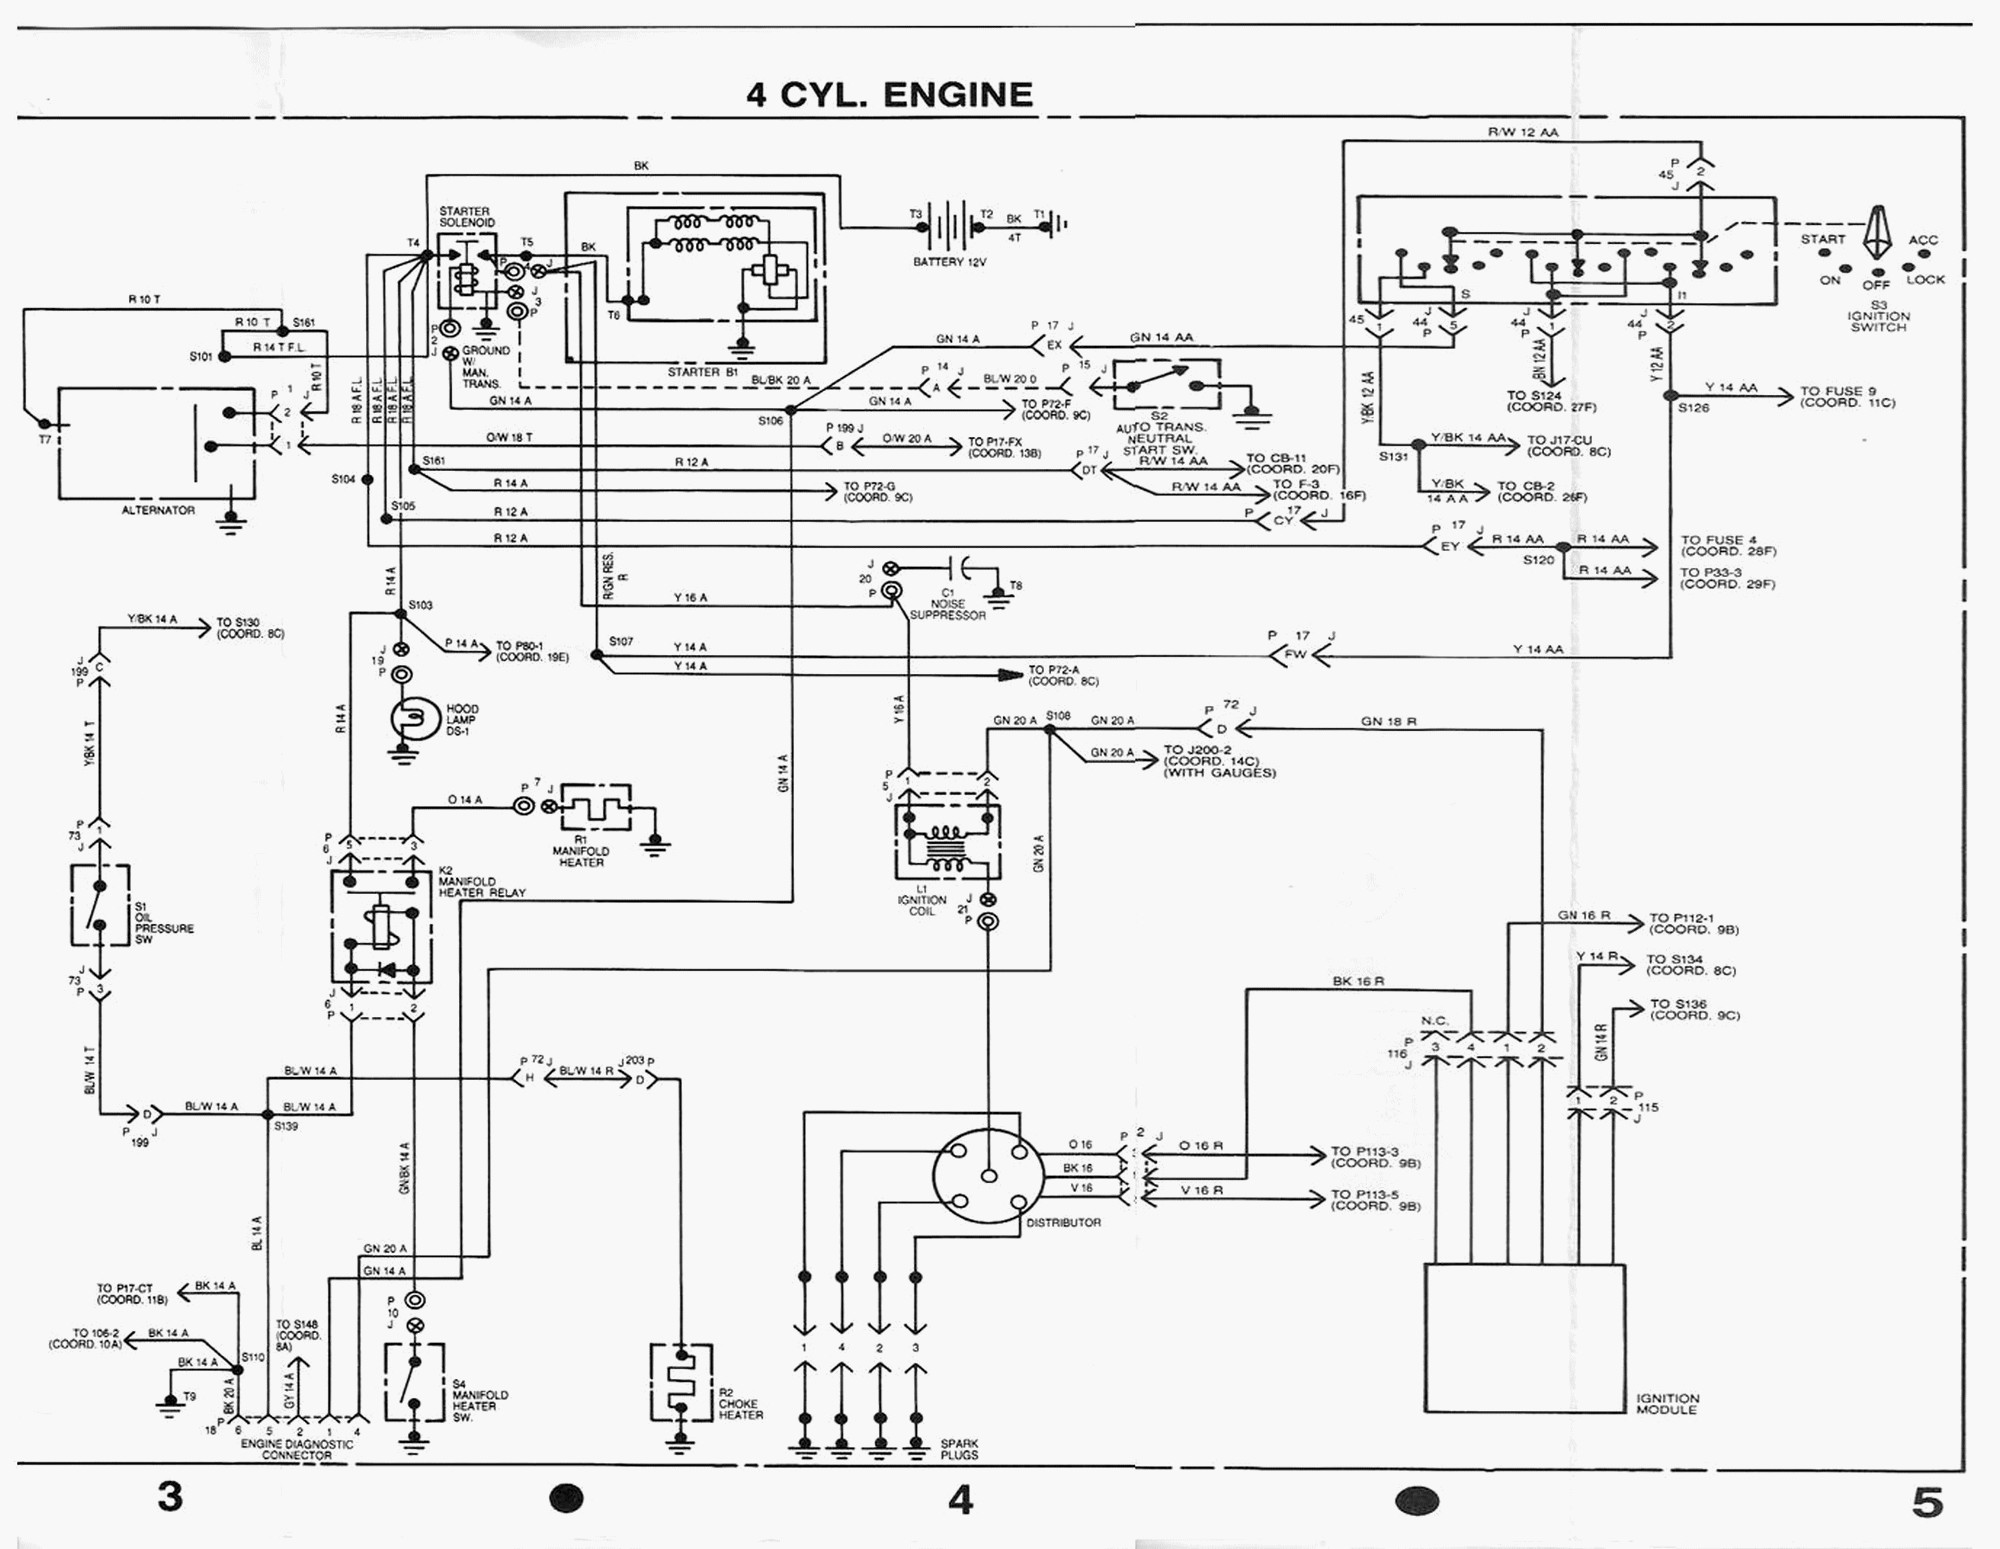 I 4 Engine amc evolution amc eagle forums \u2022 view topic downloads available 1988 jeep comanche wiring diagram at mifinder.co